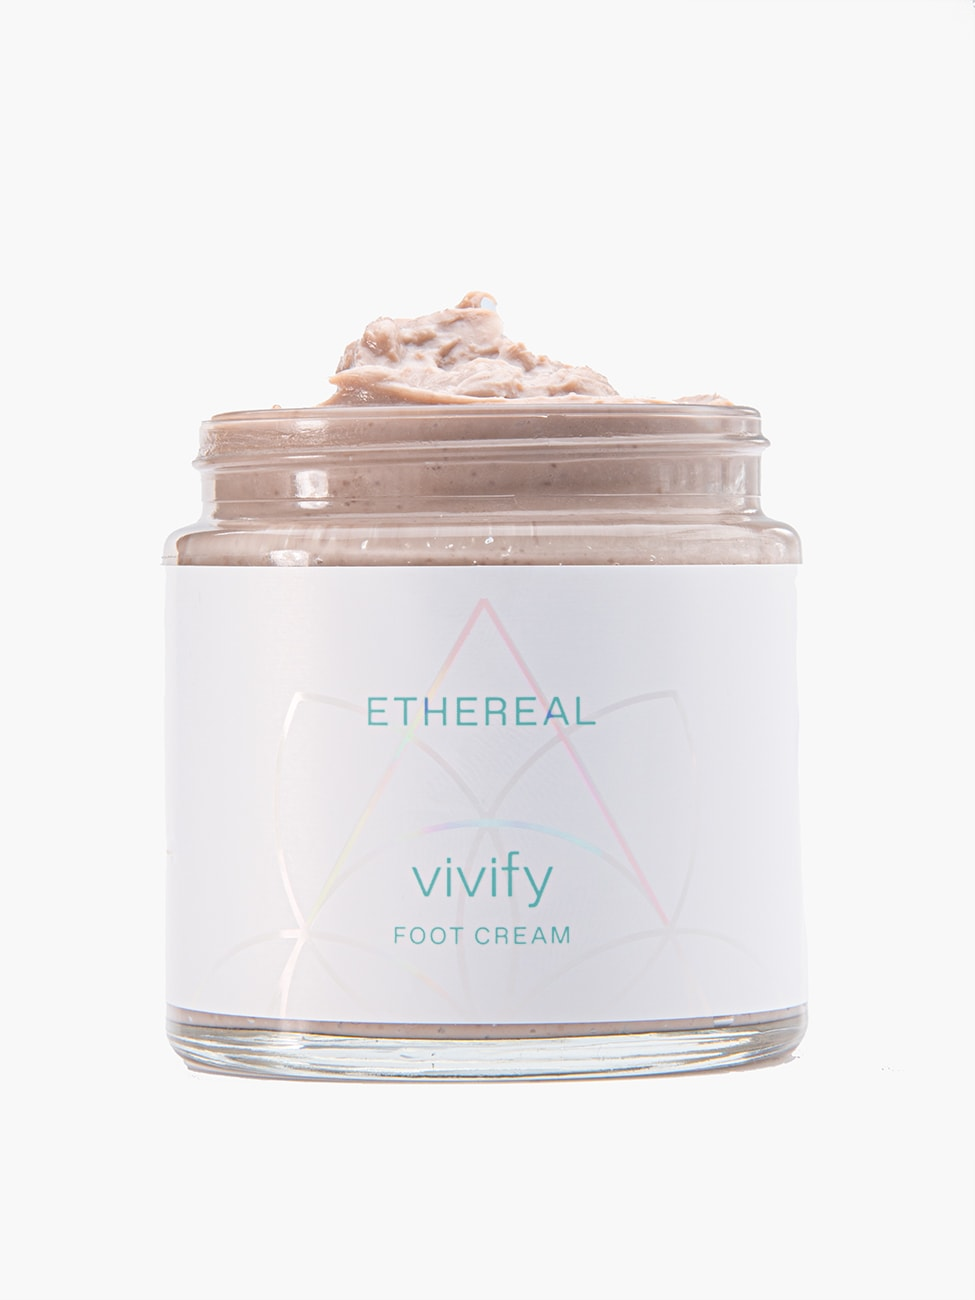 Vivify_Cream_Texture_Ethereal_Dermocosmetics_Skincare_Handmade_Greek_Products